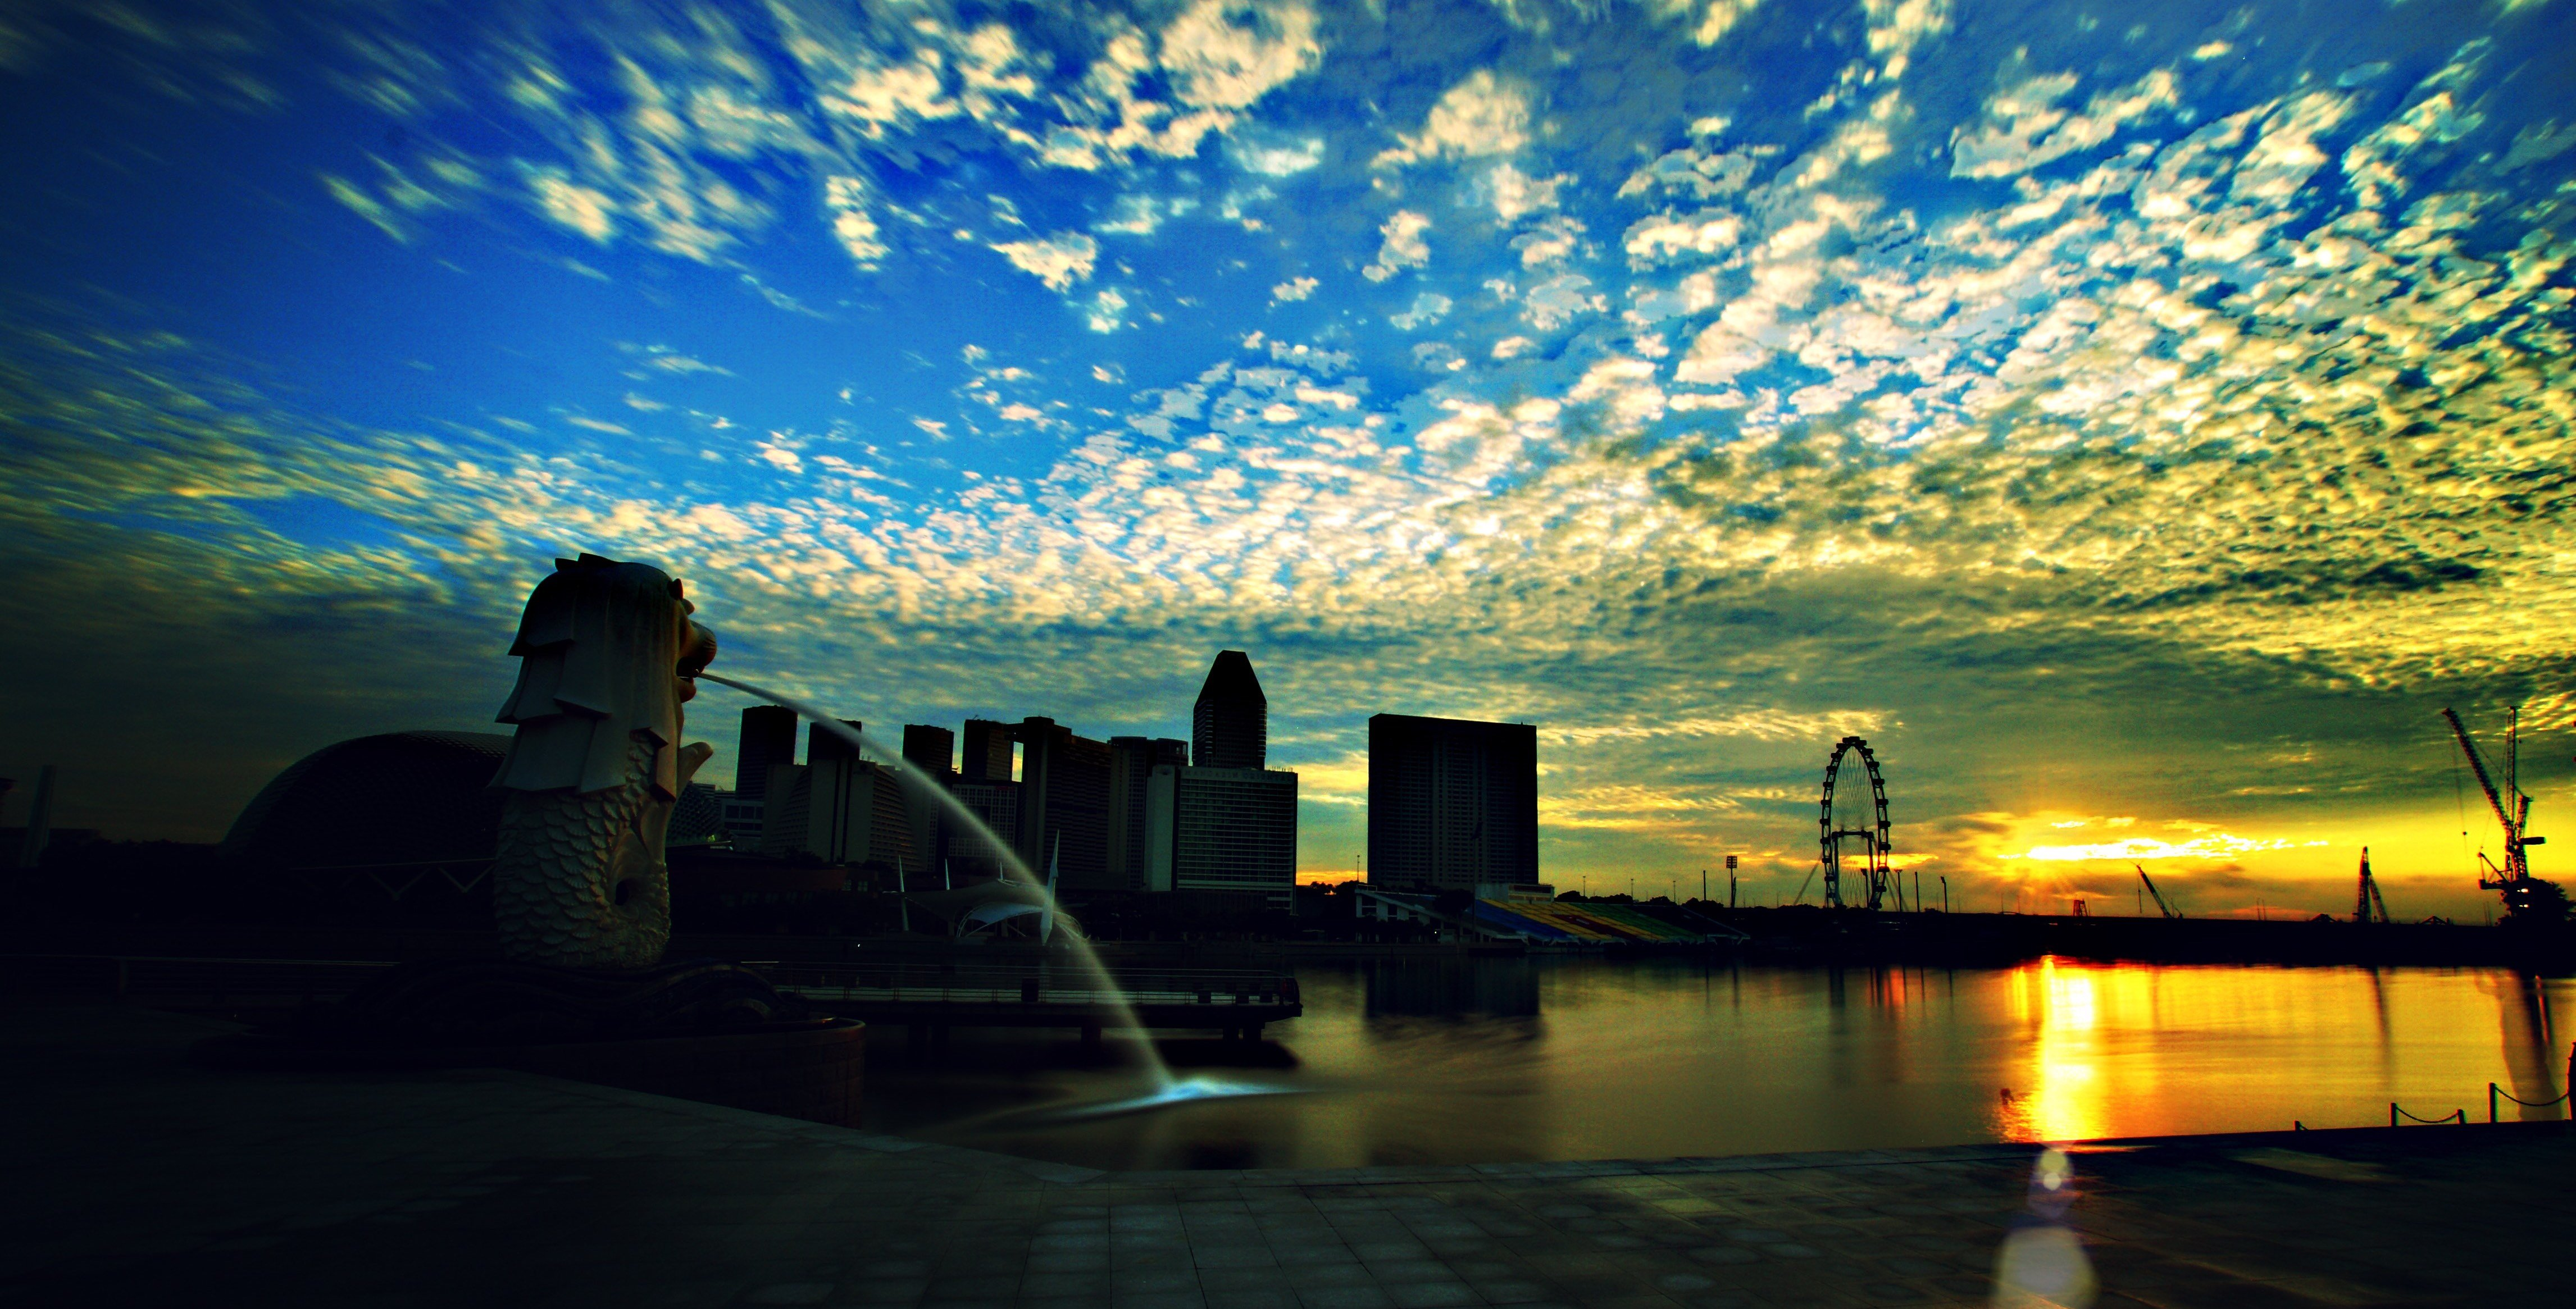 Singapore at sunrise.